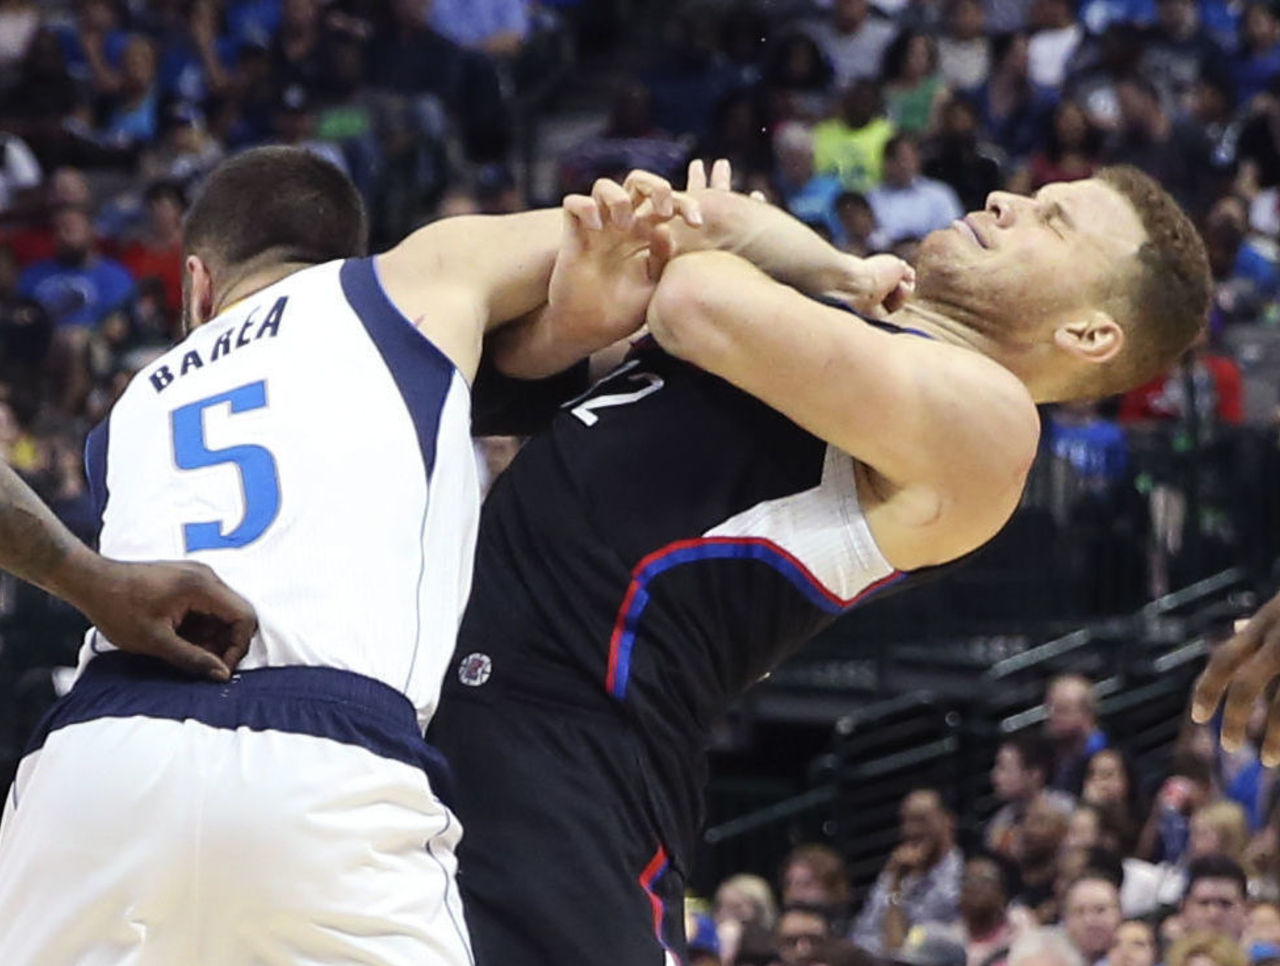 Cropped 2017 03 24t031411z 853857369 nocid rtrmadp 3 nba los angeles clippers at dallas mavericks